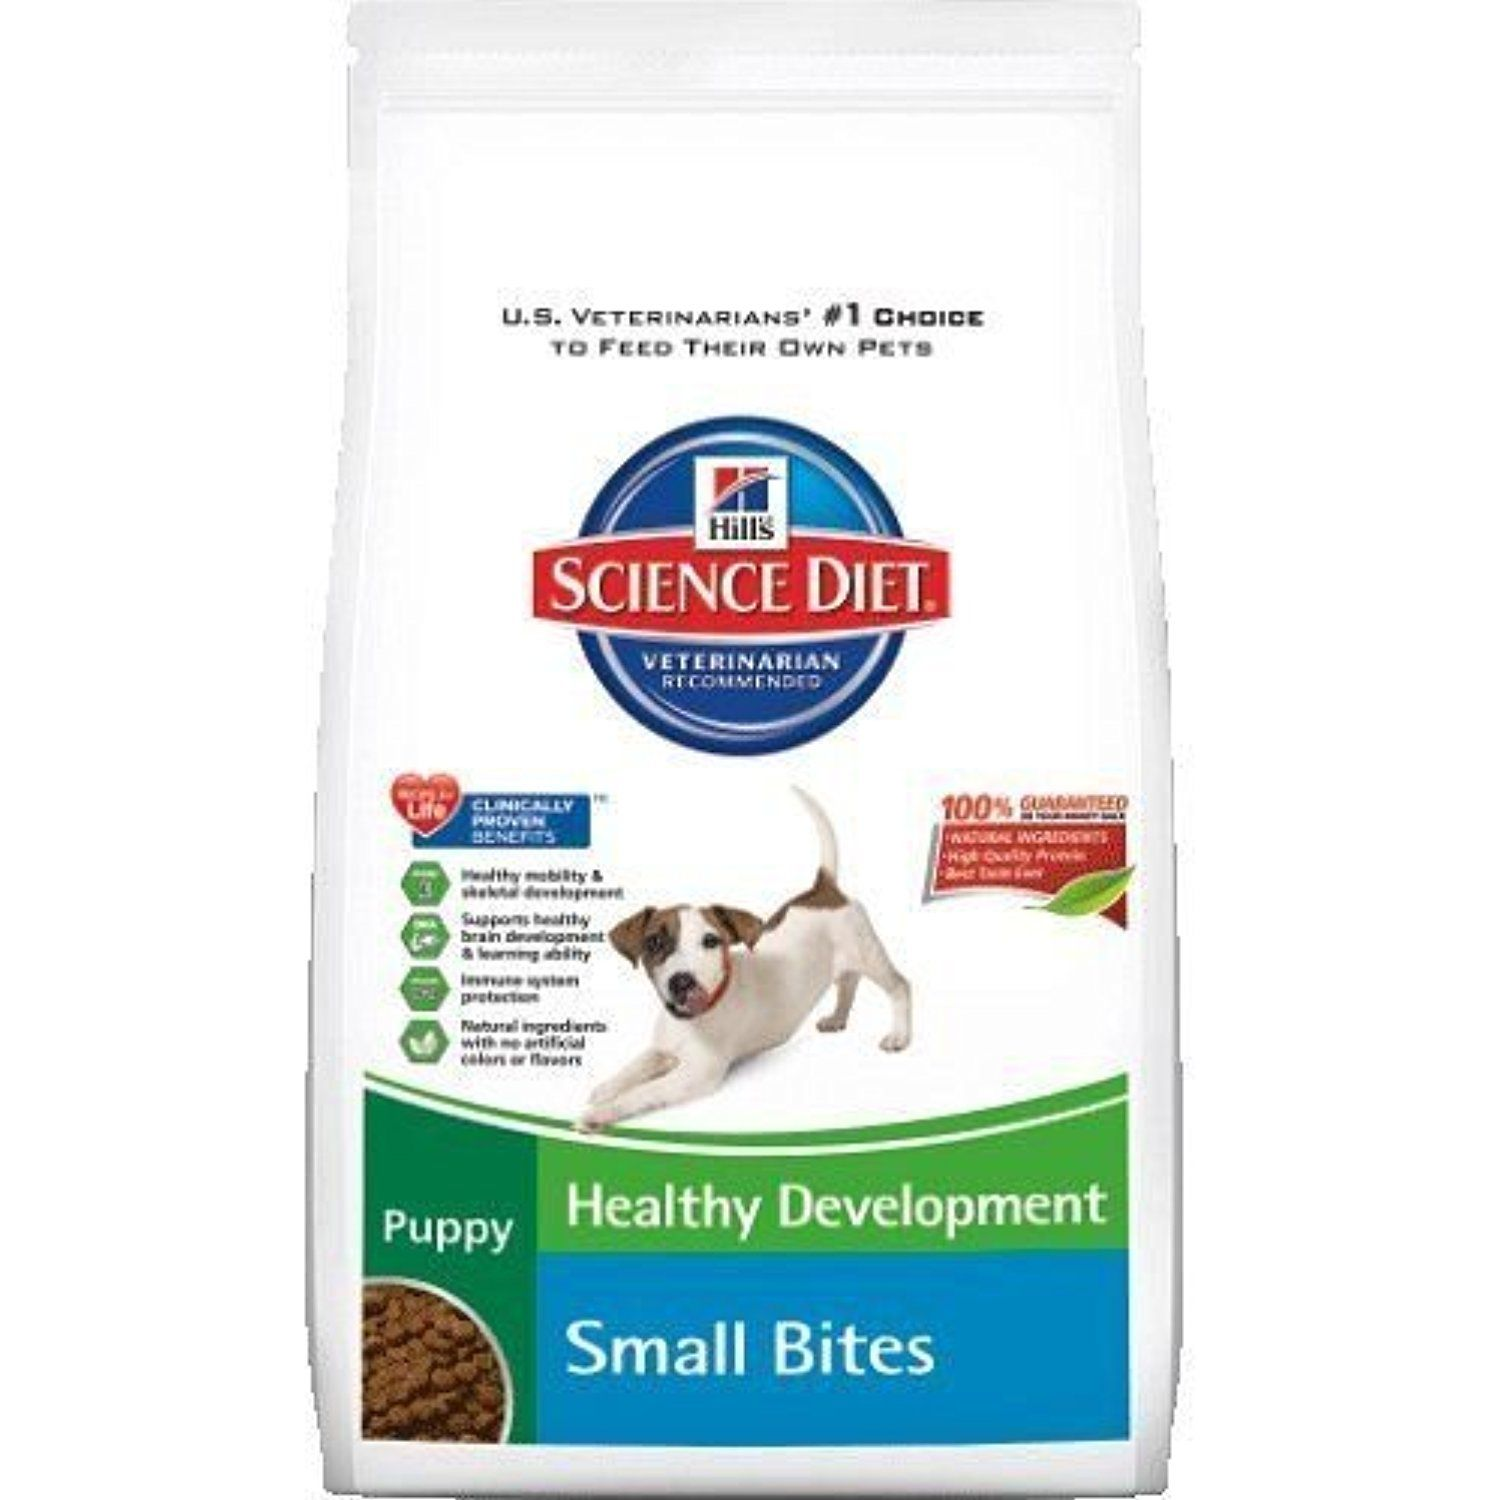 Hill's Science Diet Puppy Healthy Development Small Bites